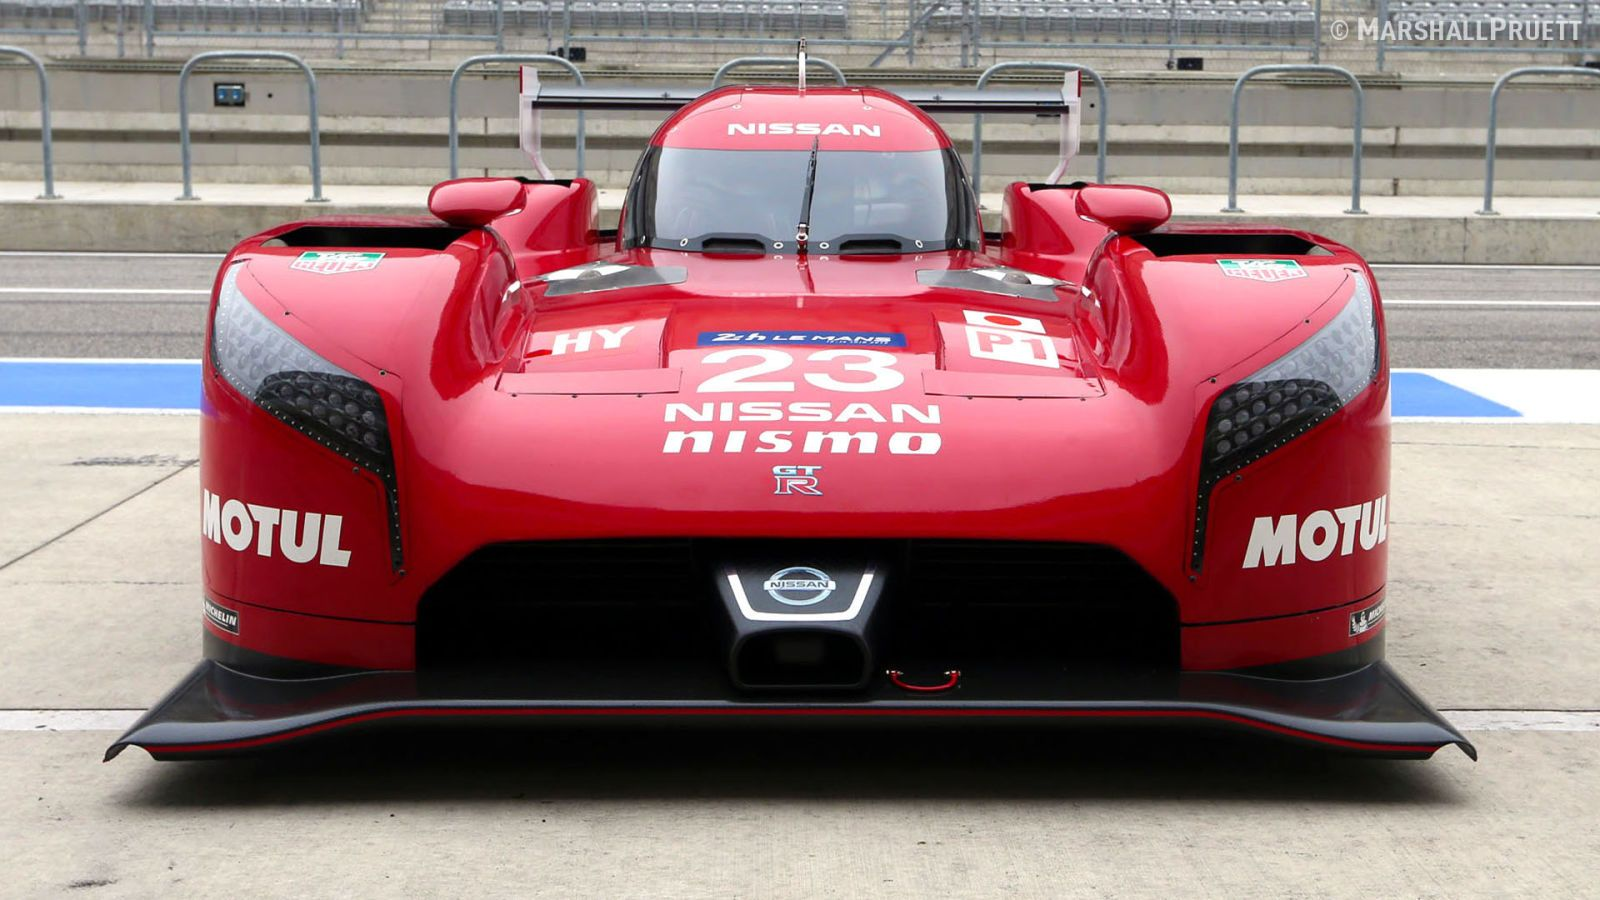 Developing the Nissan GTR LM NISMO  Nissan and Cars